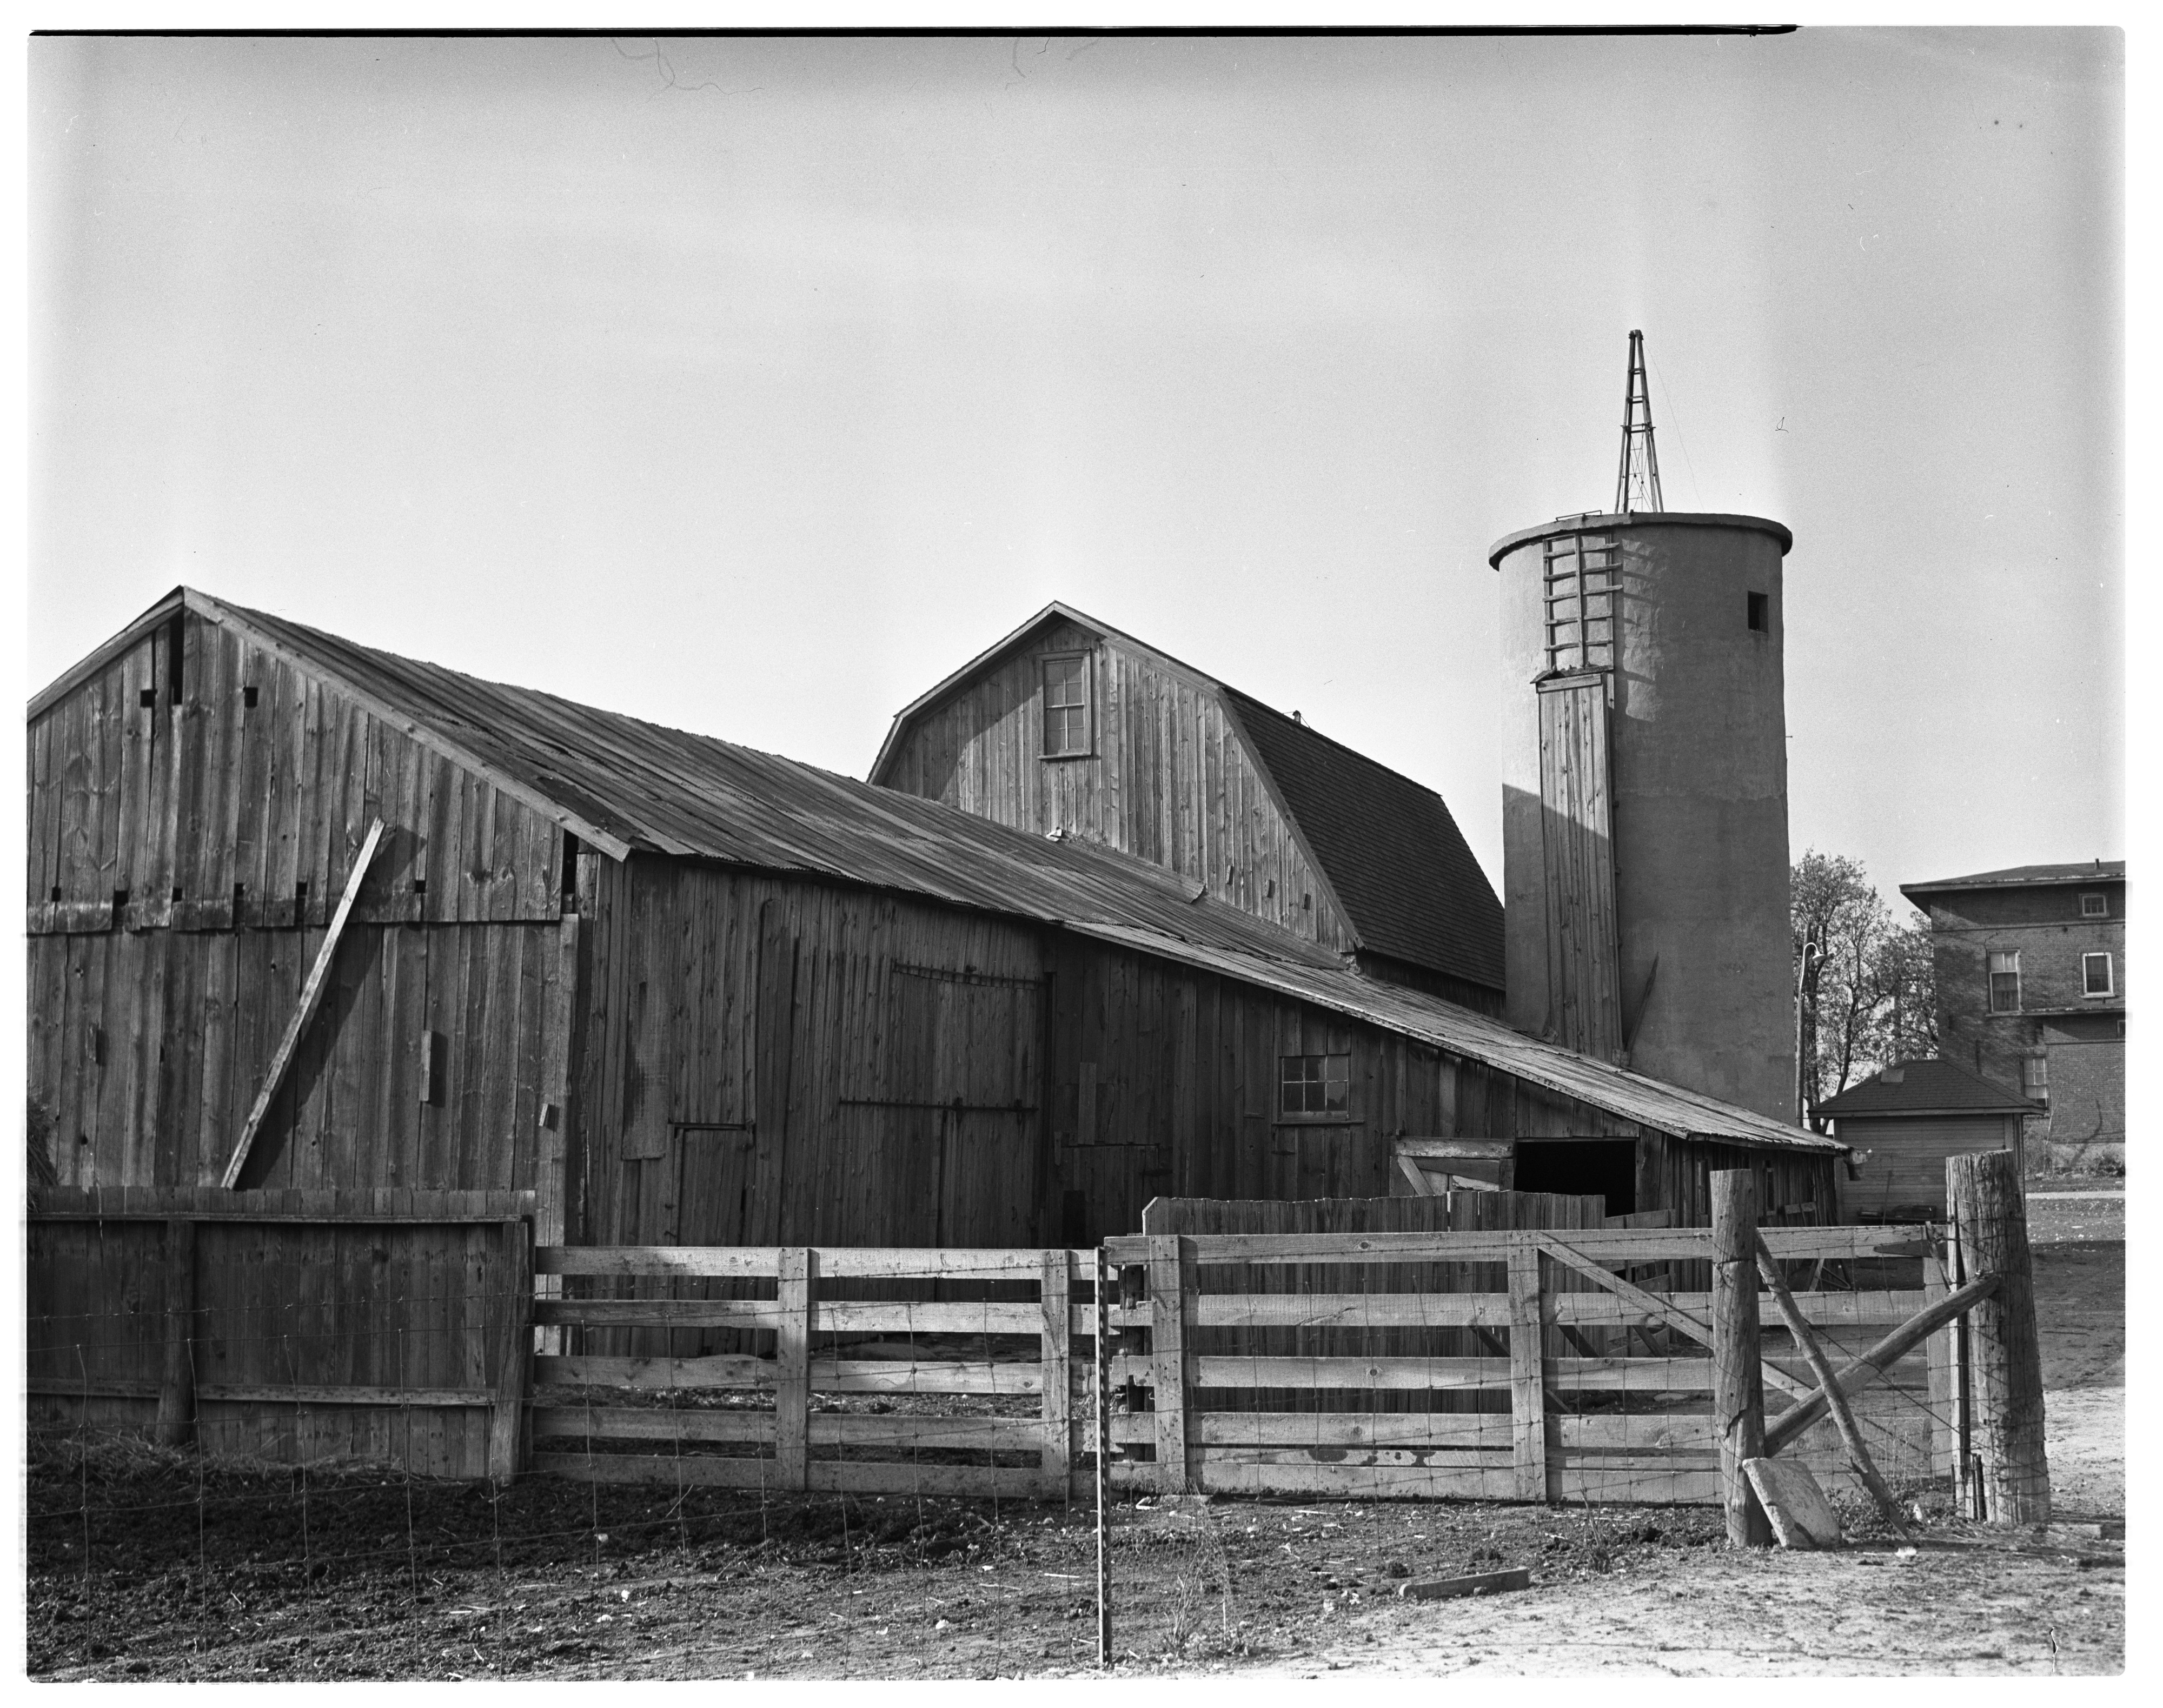 Martin and Edith Fuoss Farm in Saline, MI image